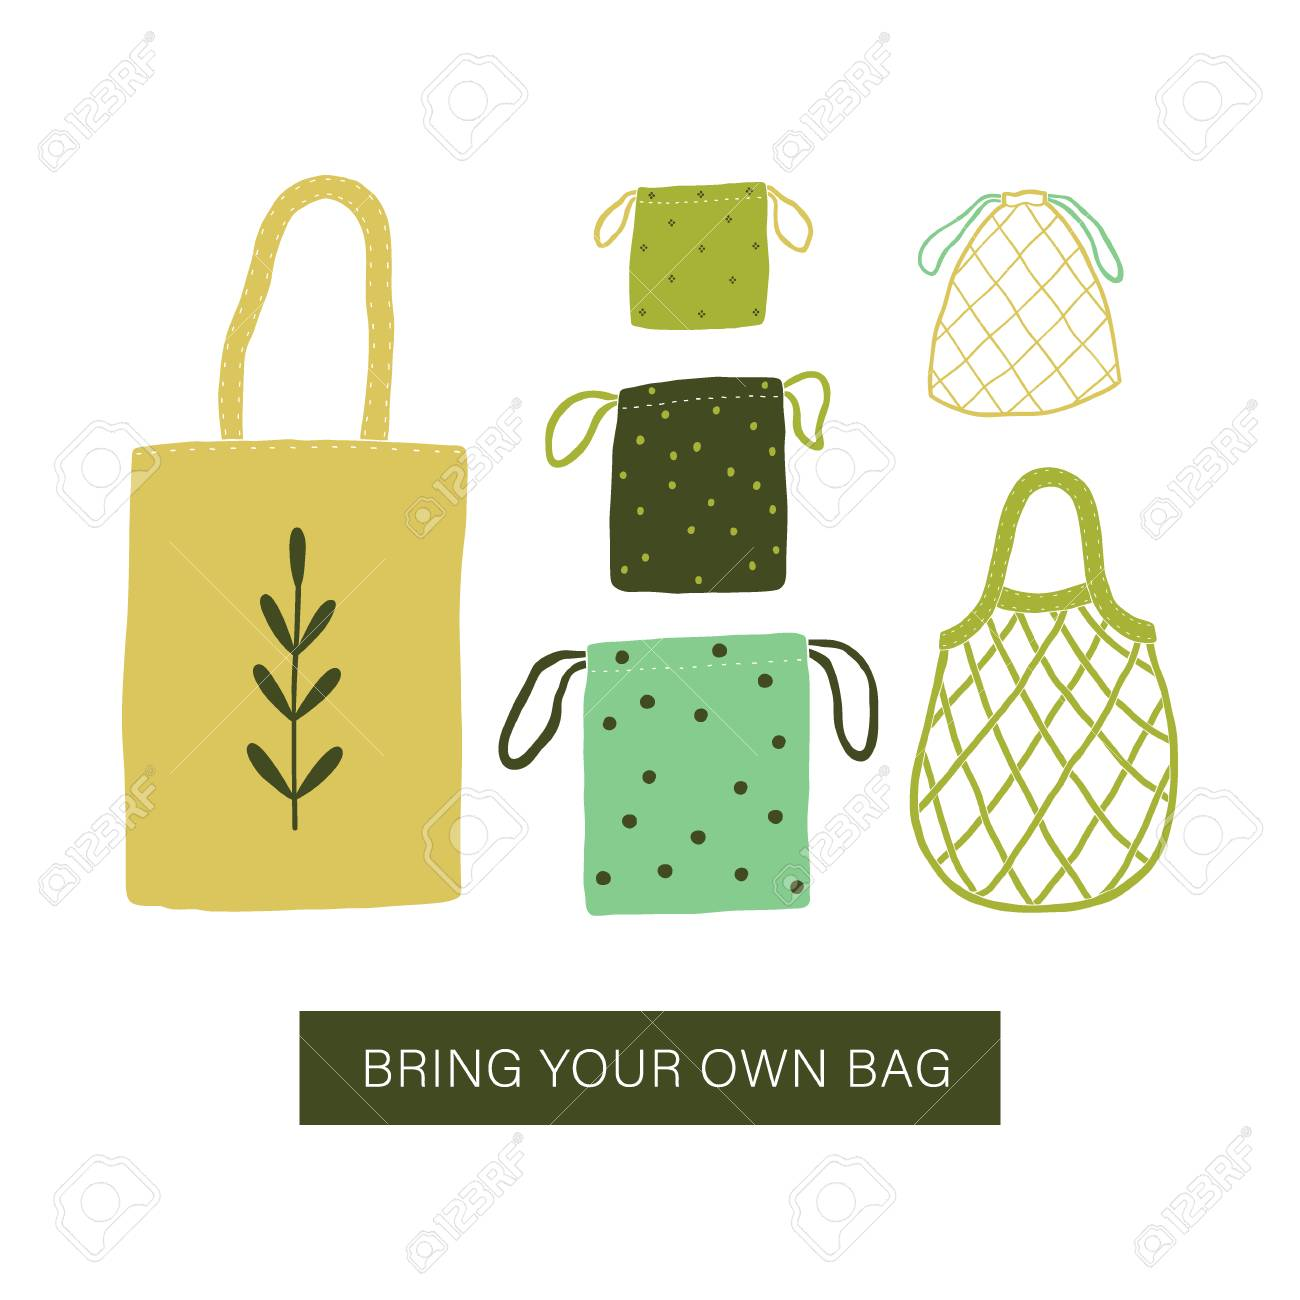 Bring your own bag. Zero waste bags. Vector illustration - 124003441